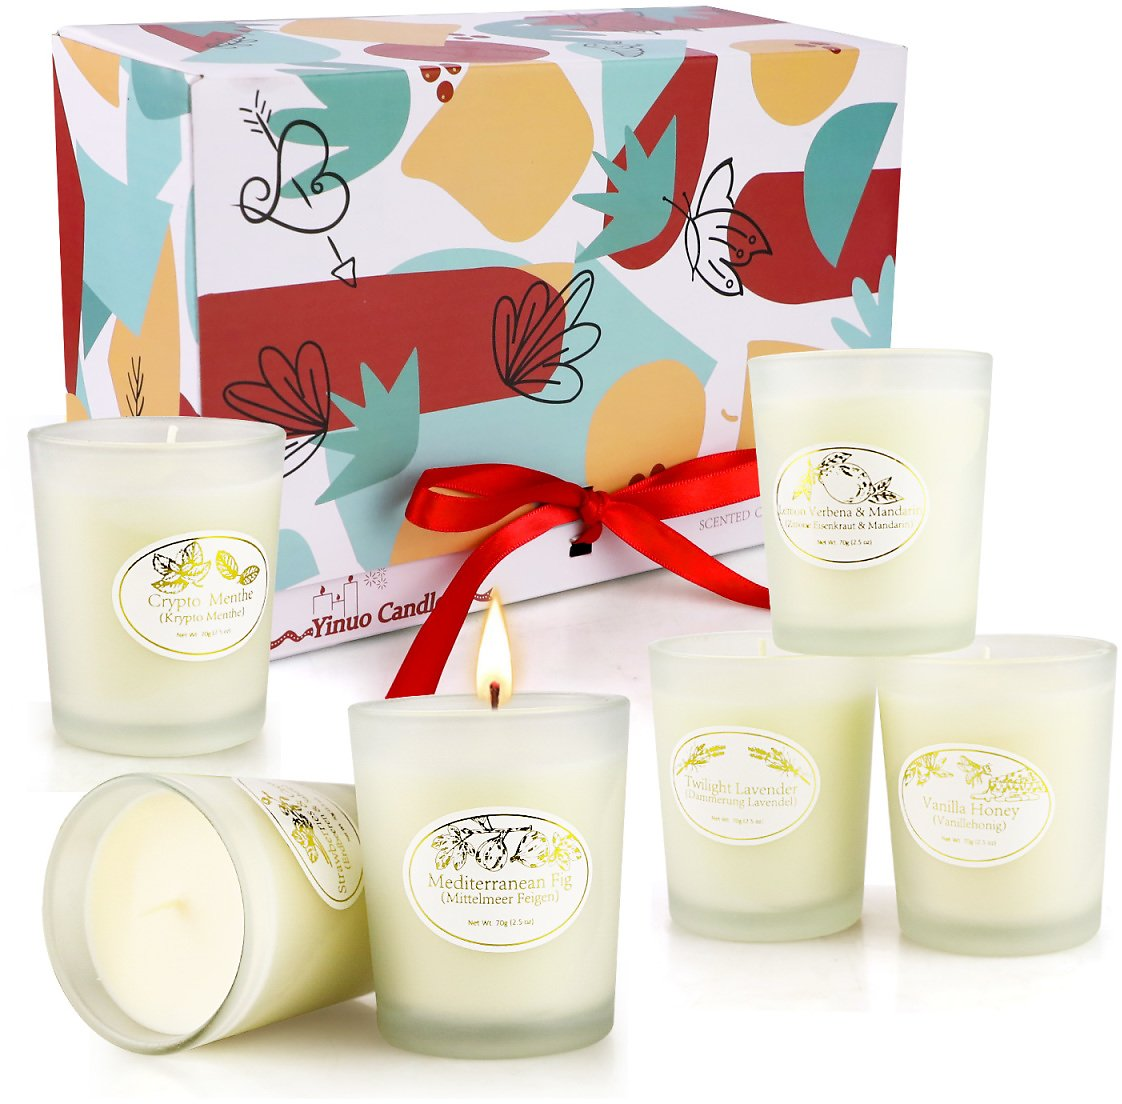 #deals--Candles Gift Set, Candles for Home Scented, 6 Pack Essential Oil Candles